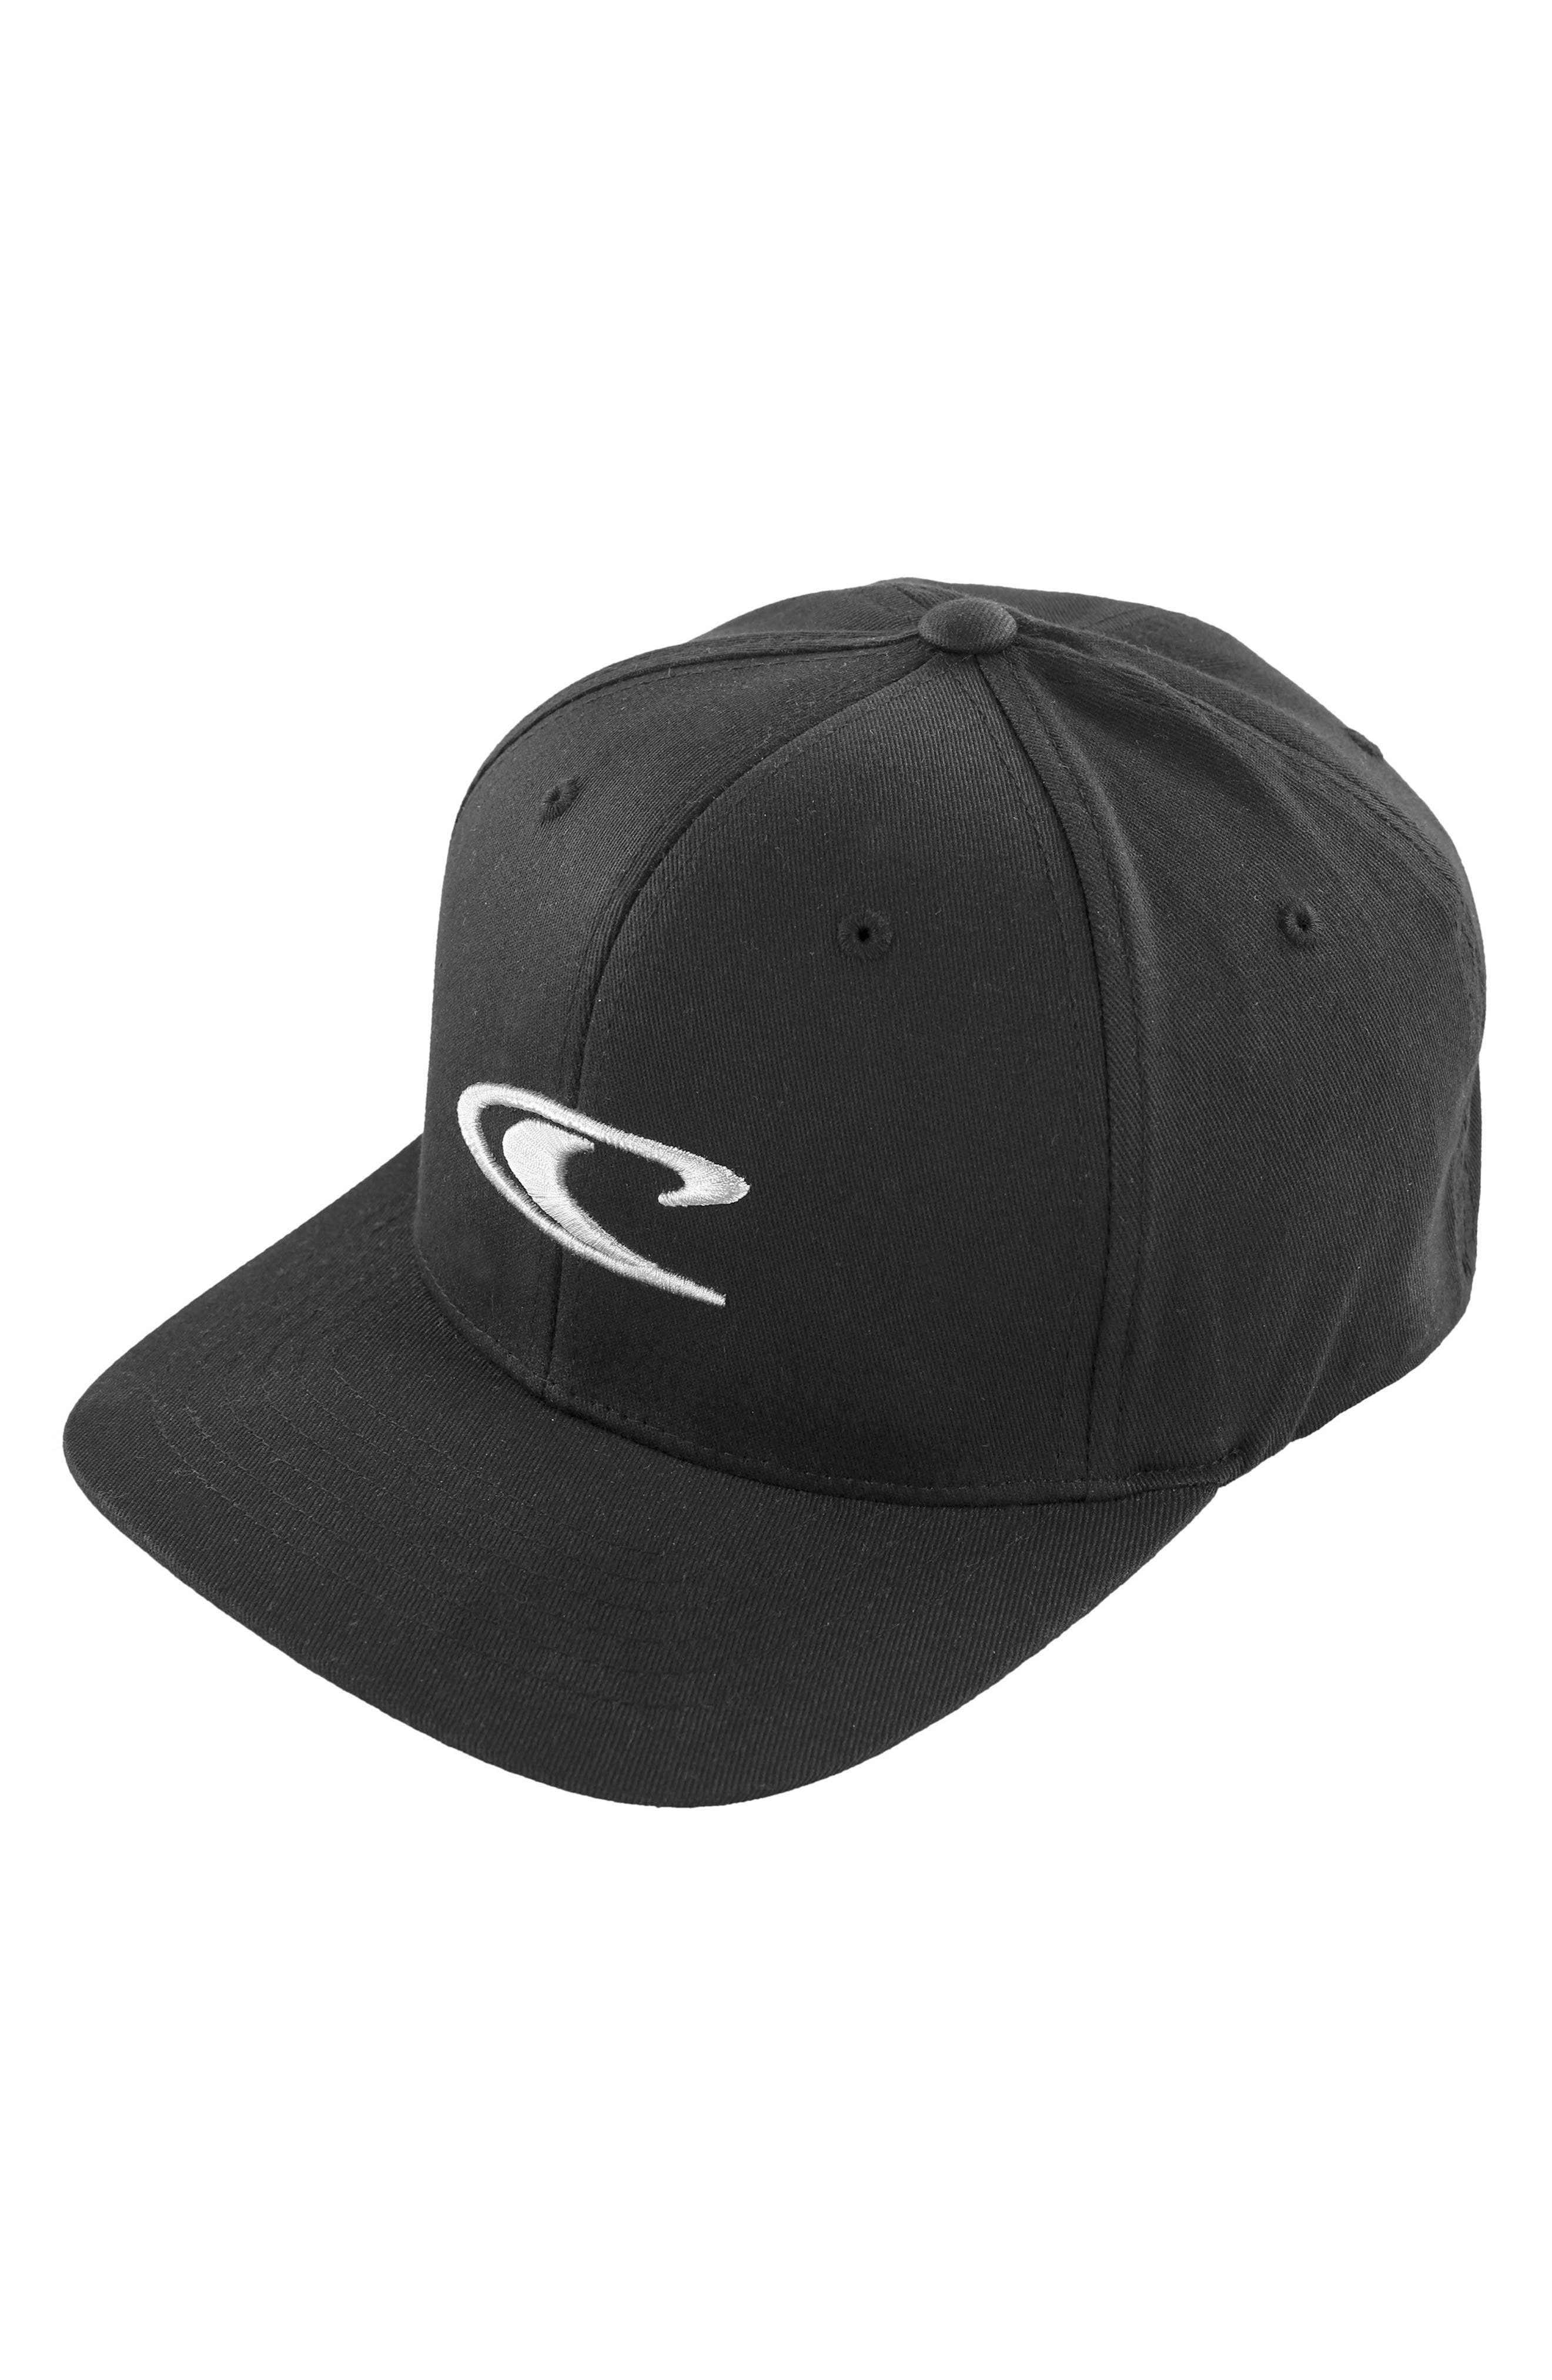 Alternate Image 1 Selected - O'Neill Clean & Mean Cap